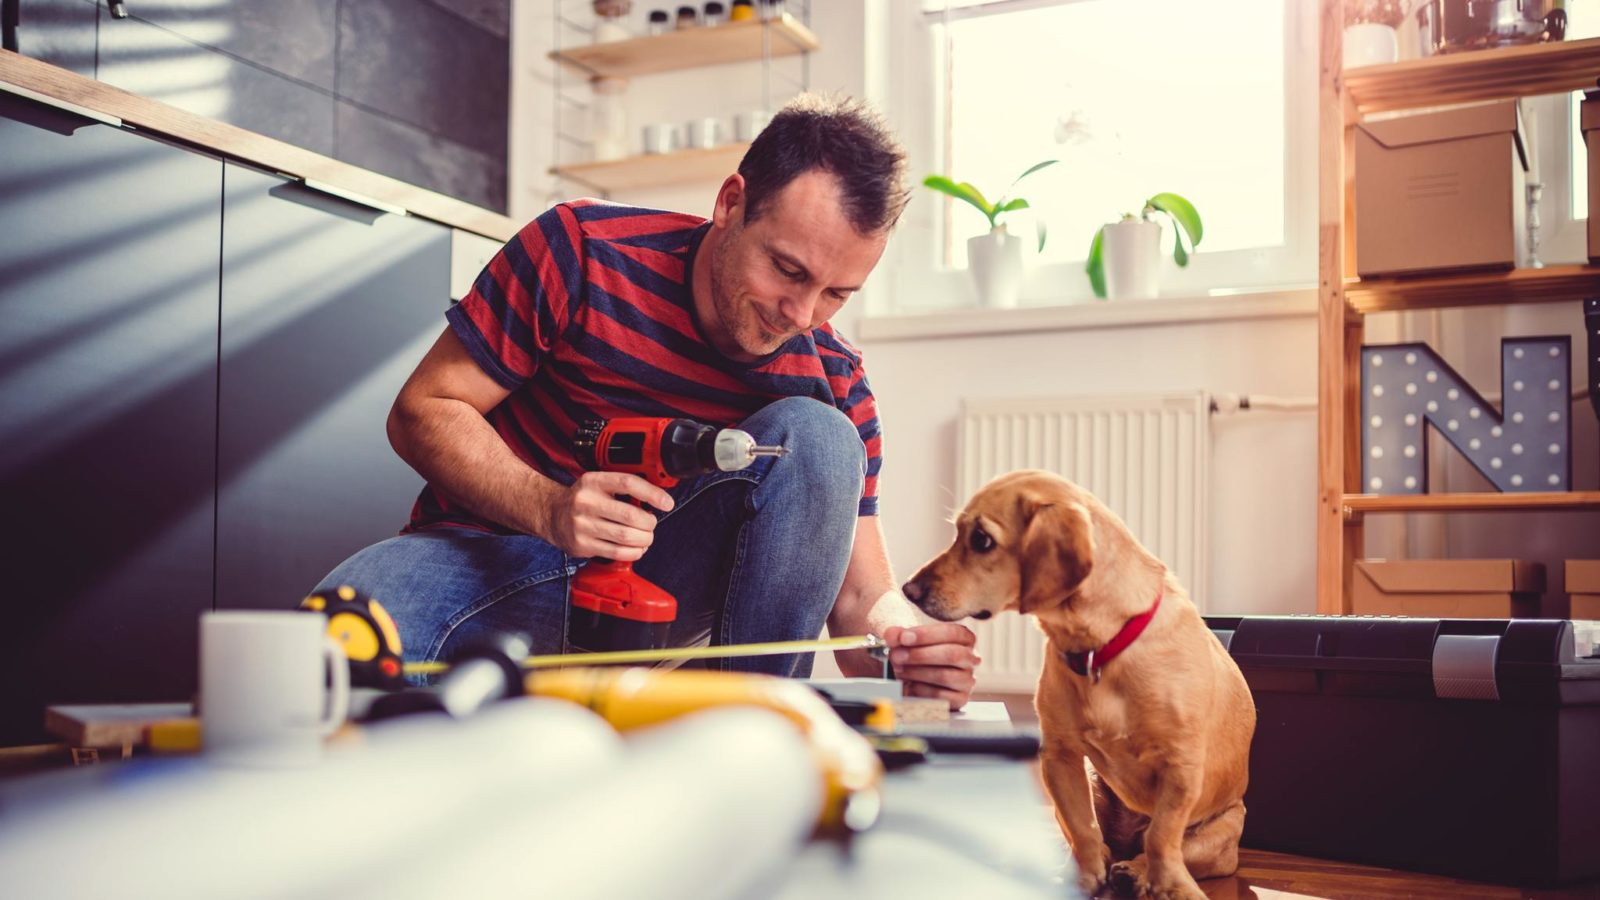 Man with small yellow dog working on a new kitchen